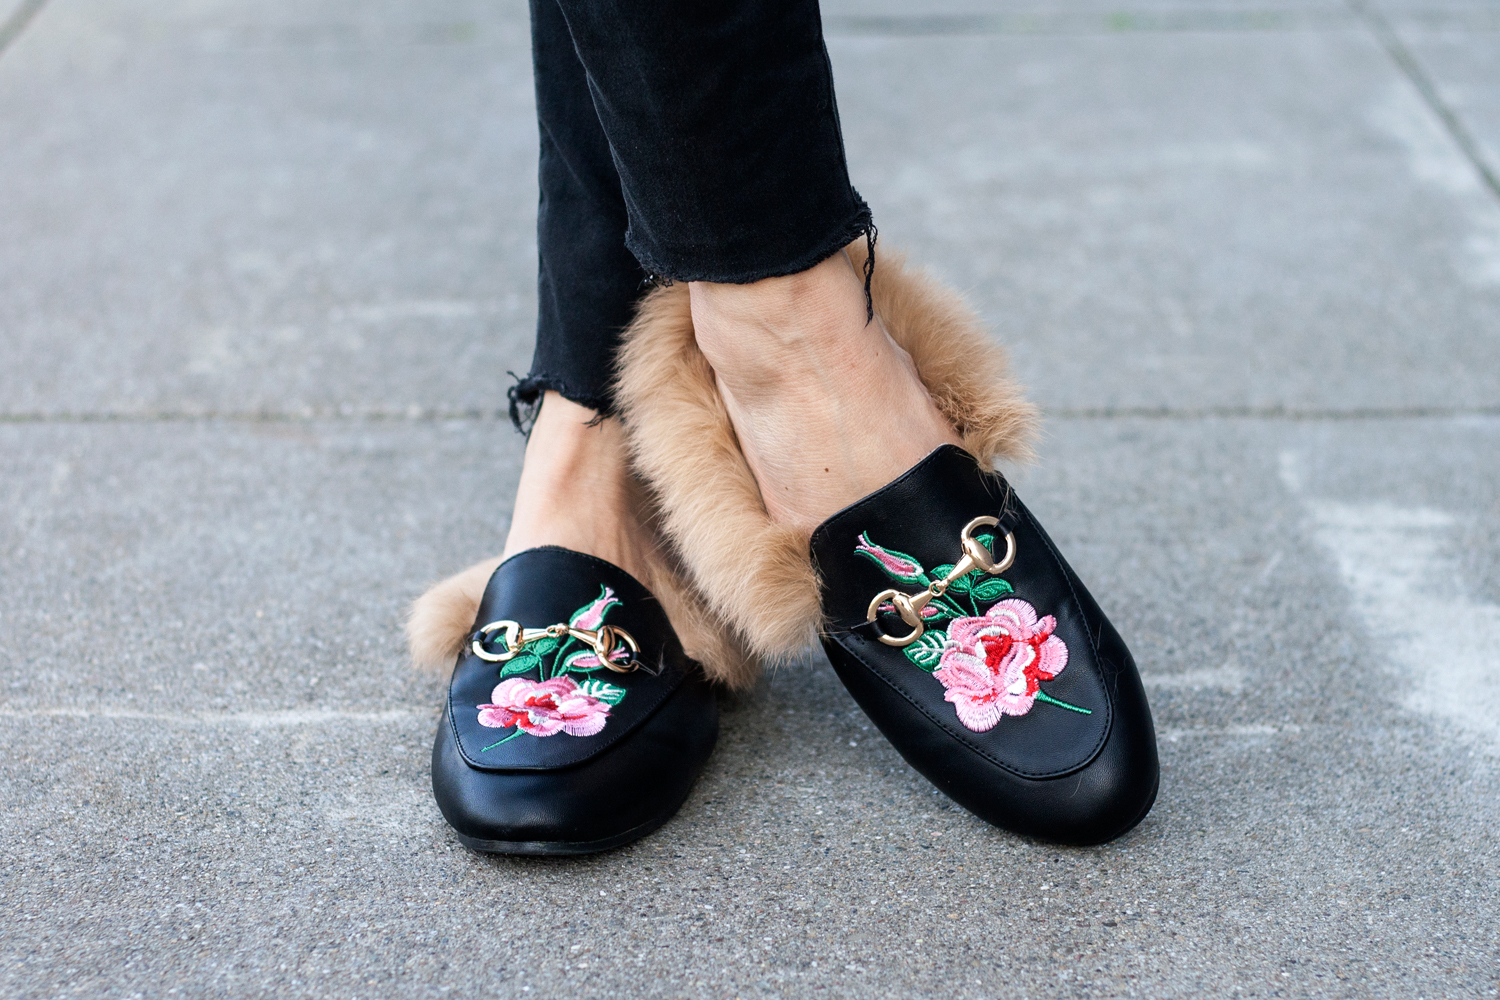 08floral-fur-slippers-embroidery-mules-sf-fashion-style